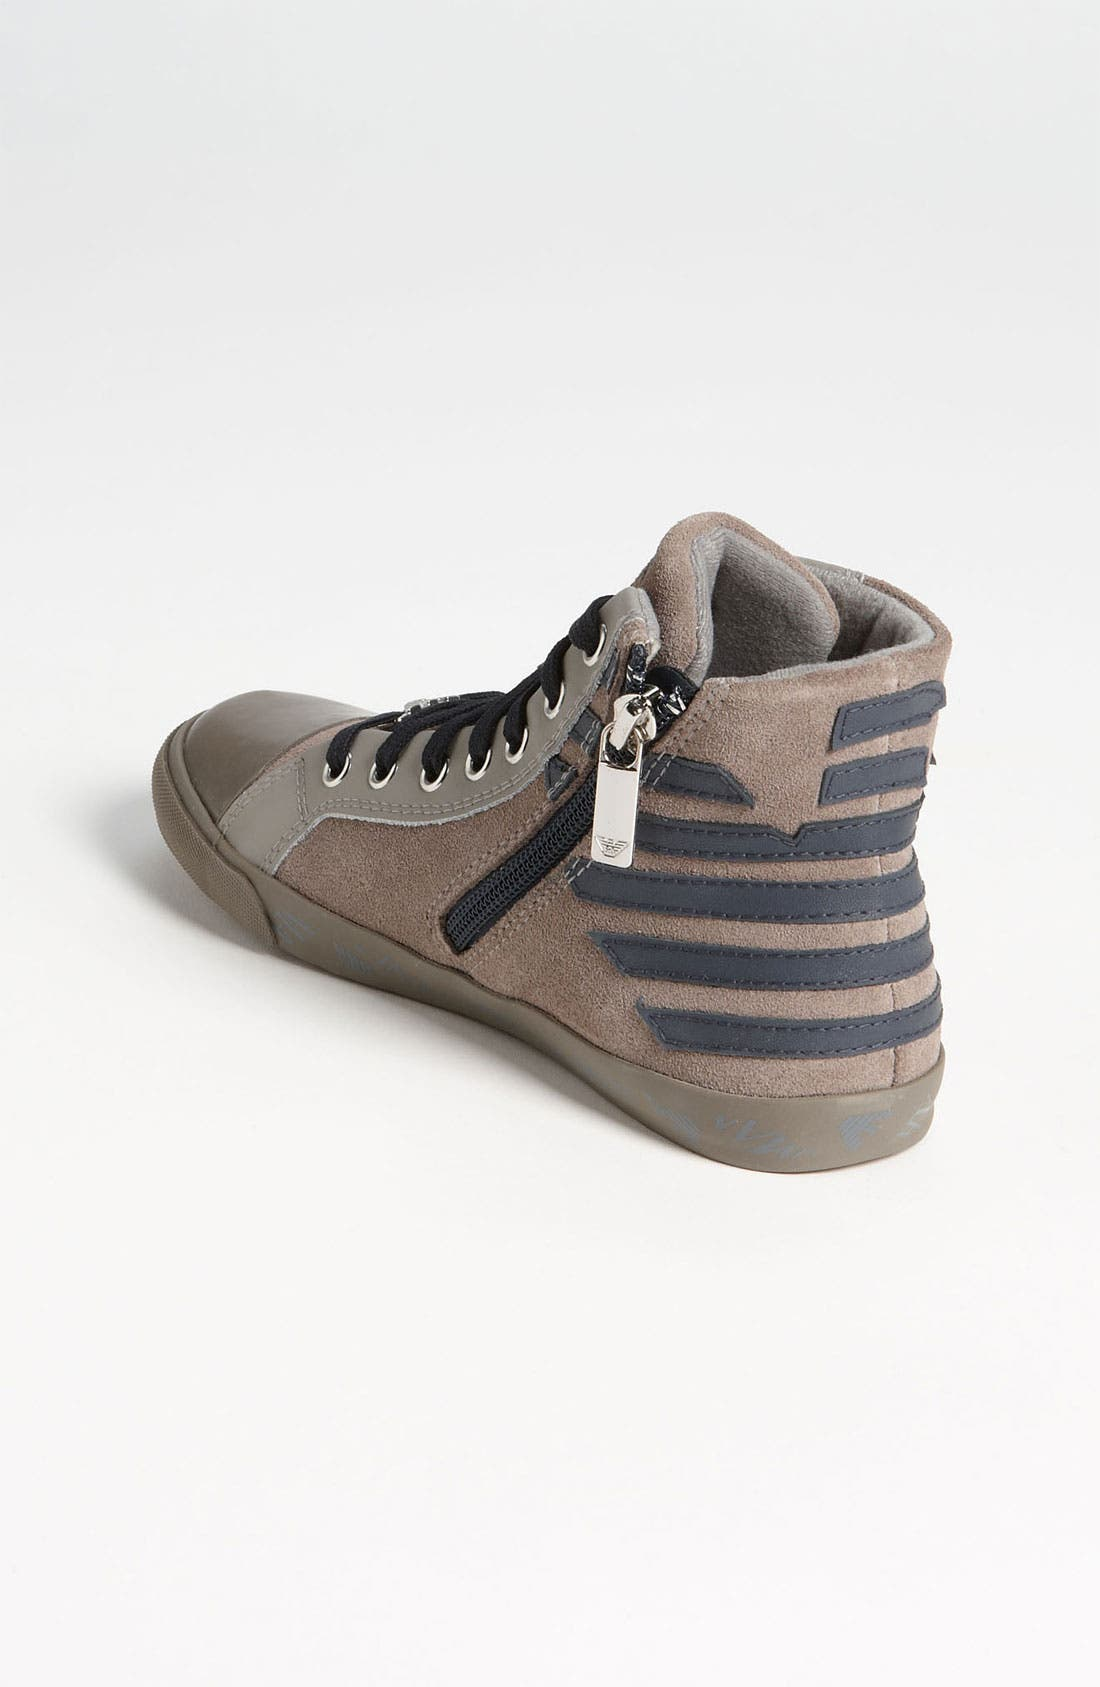 Alternate Image 2  - Armani Junior 'Eagle' Sneaker (Toddler, Little Kid & Big Kid)